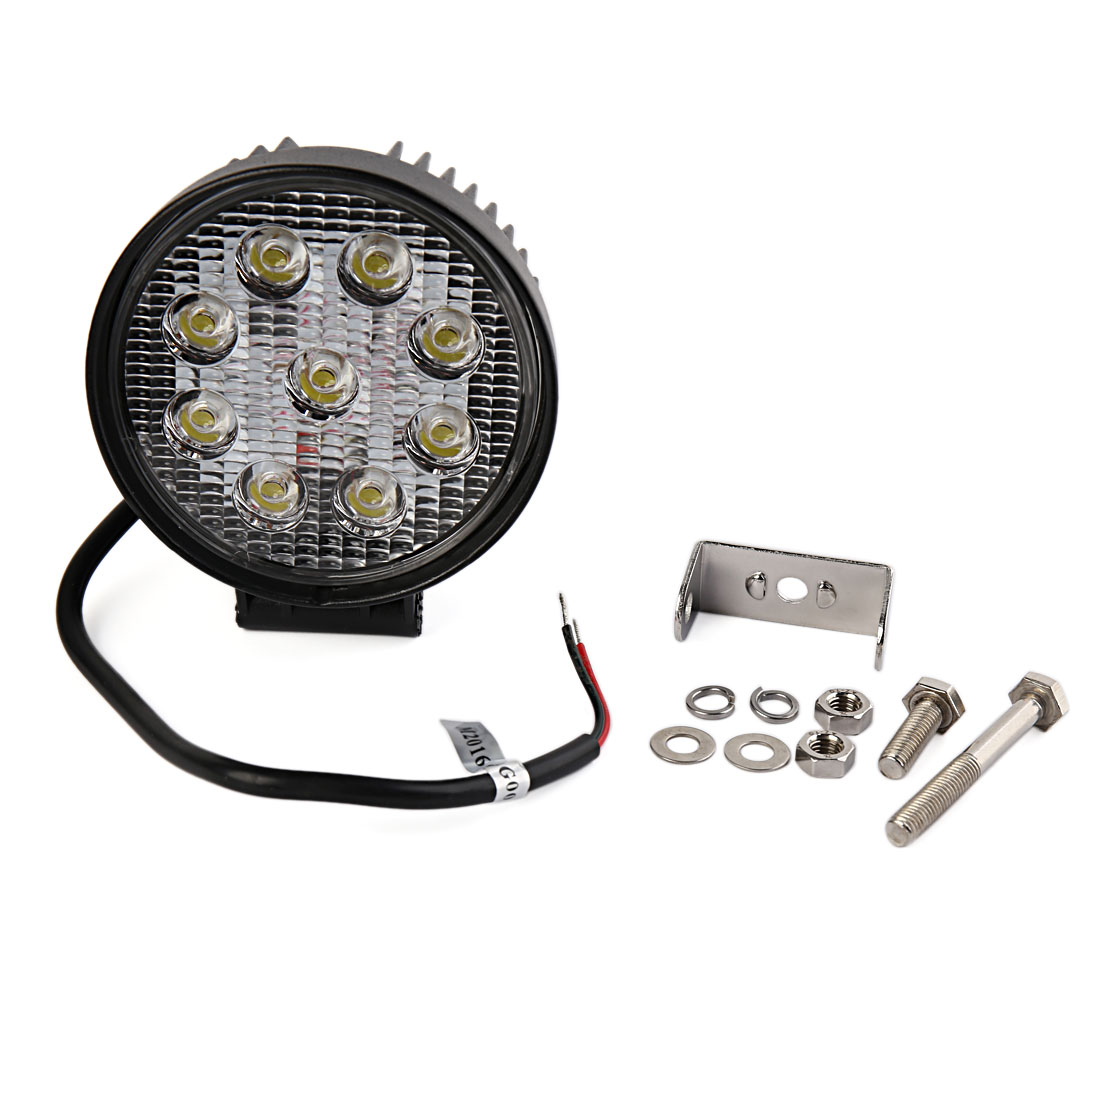 Round 27W LED Work Spot Pencil Offroads Lamp Light Truck 12V 4WD 4x4